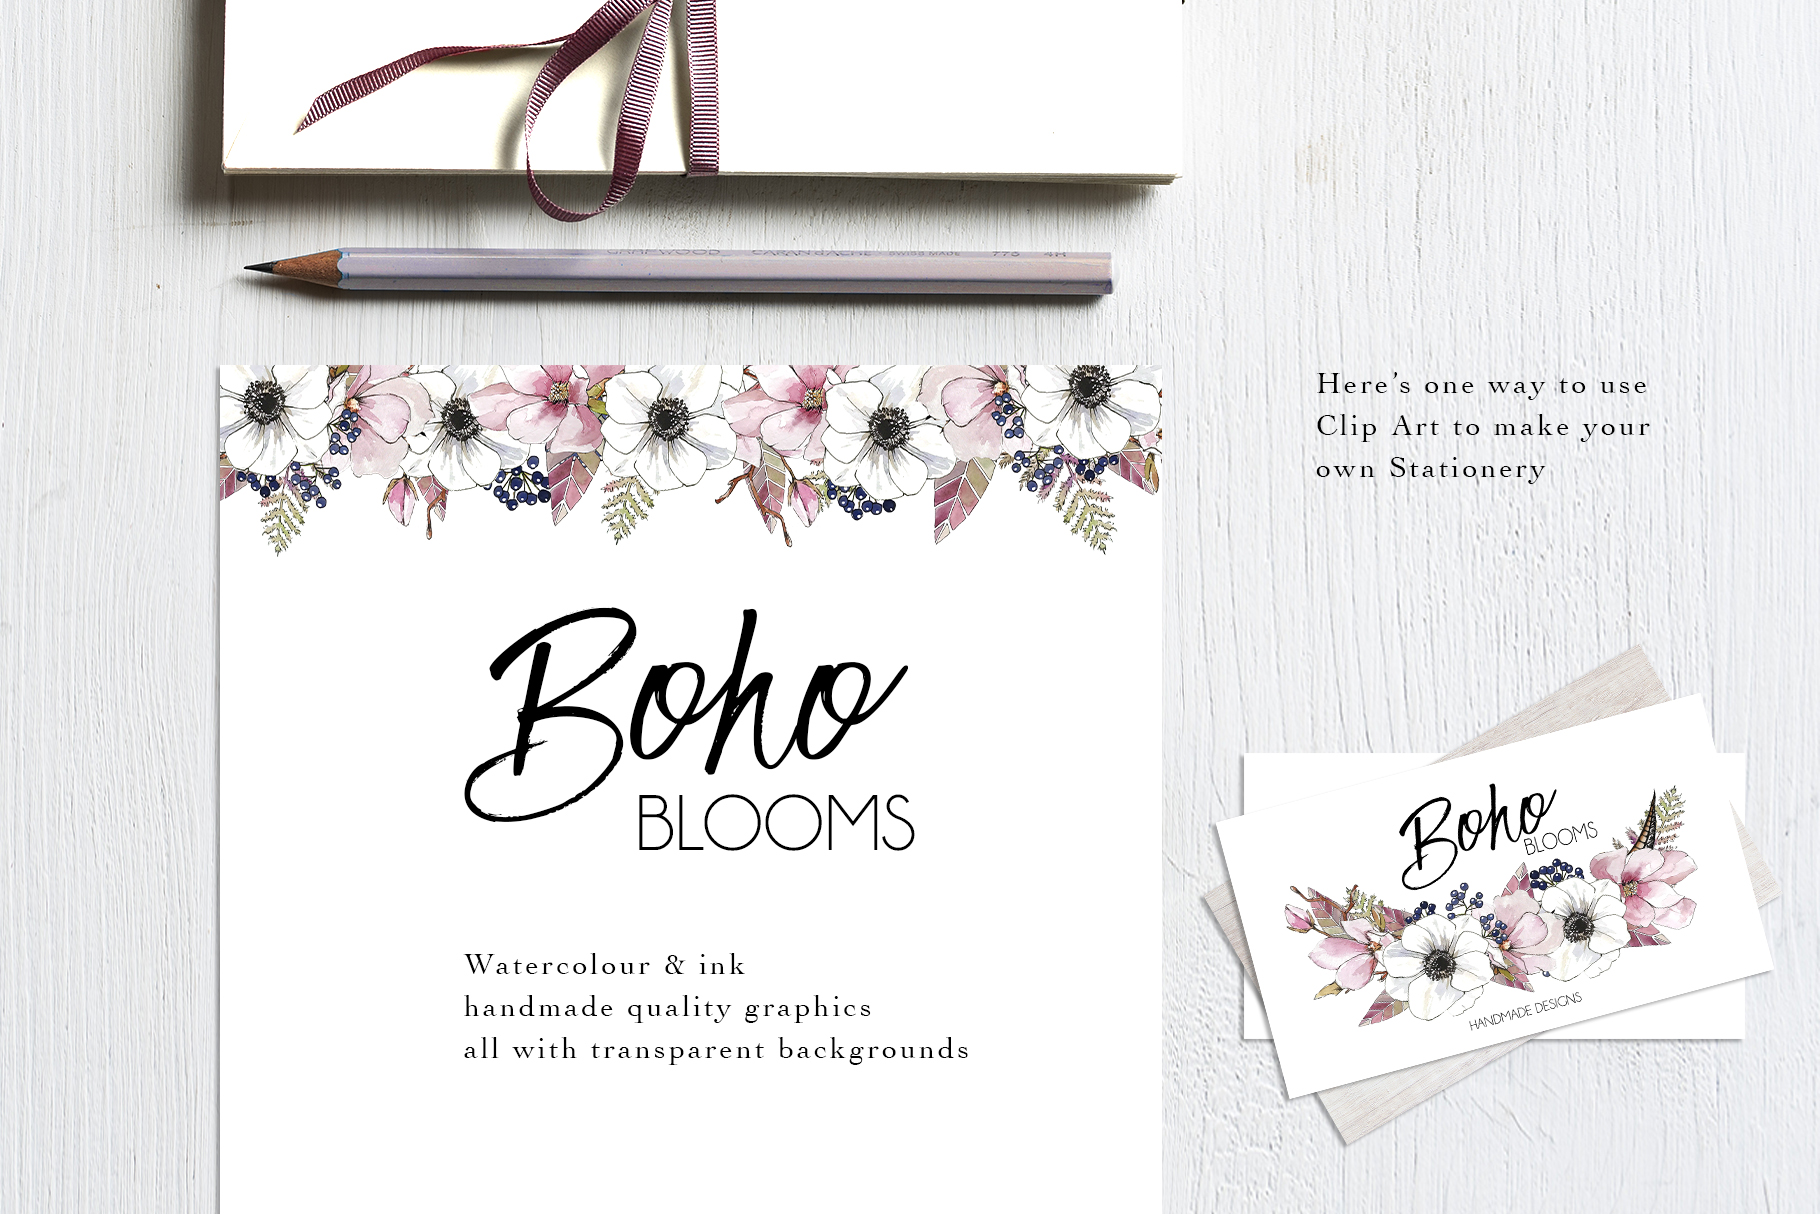 Watercolor & Ink ClipArt Boho Blooms example image 4